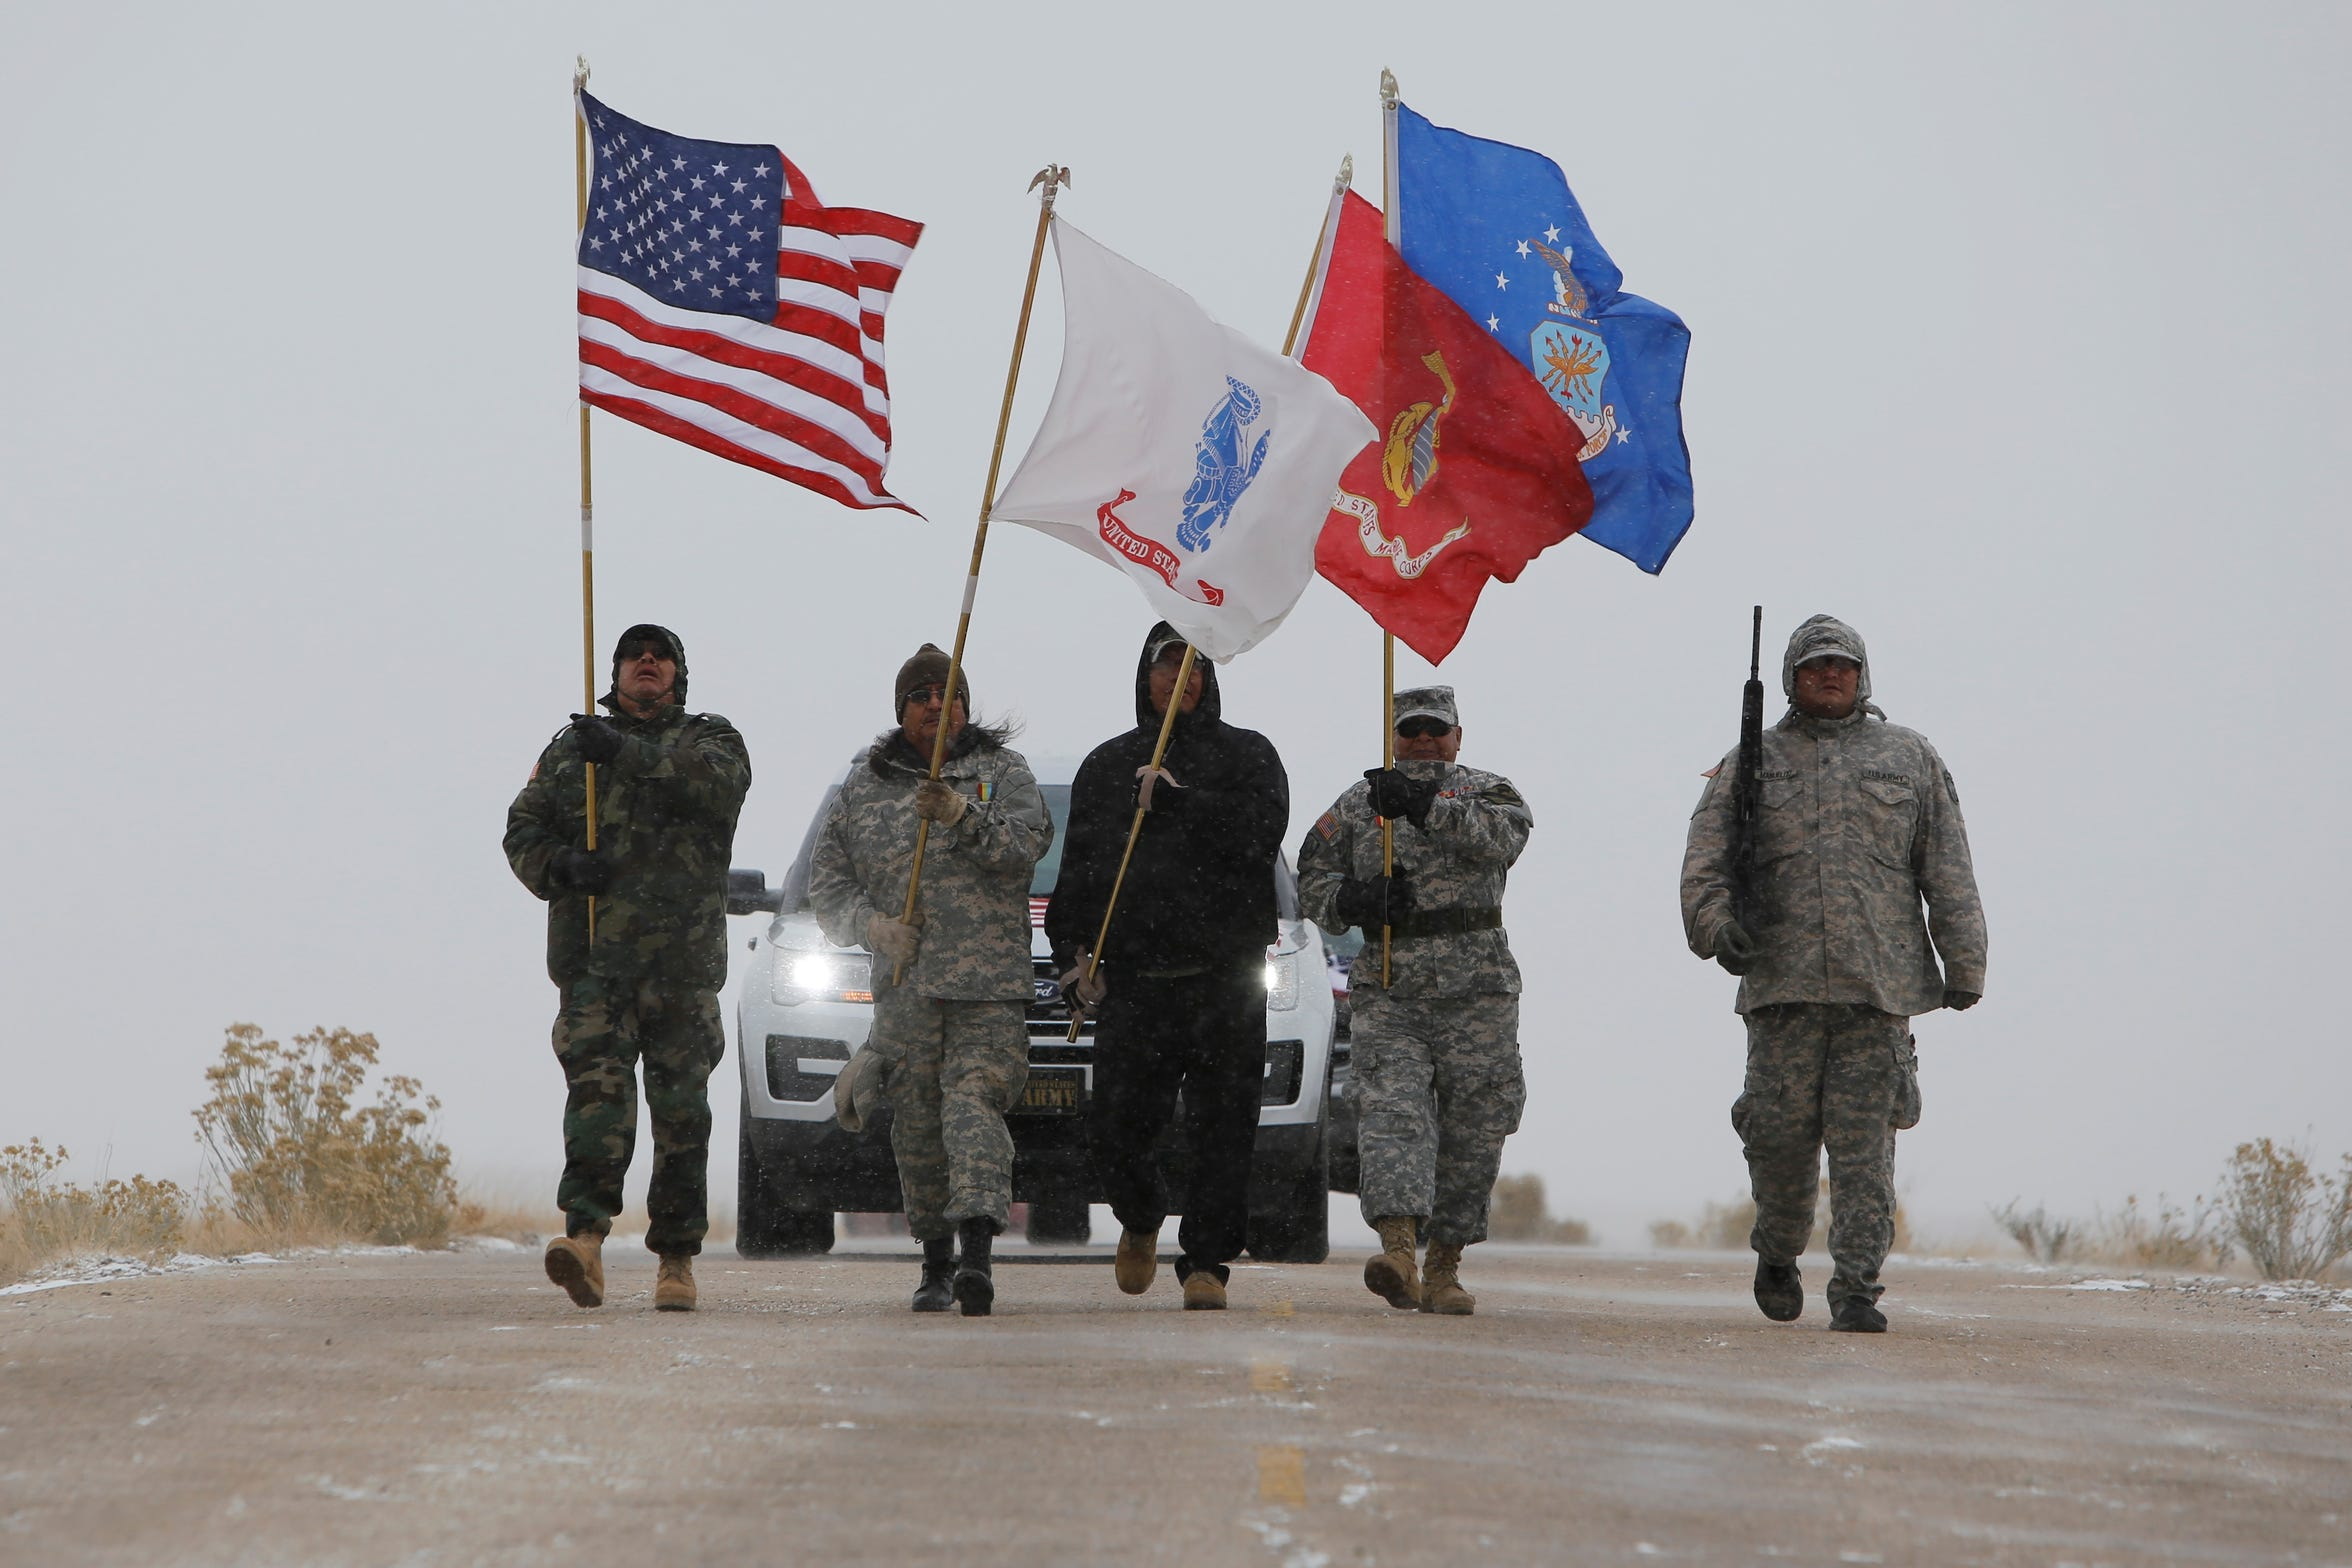 Members of the Tooh Haltsooí Veterans Organization carry flags in the Veterans Day parade on Monday in Sheep Springs.